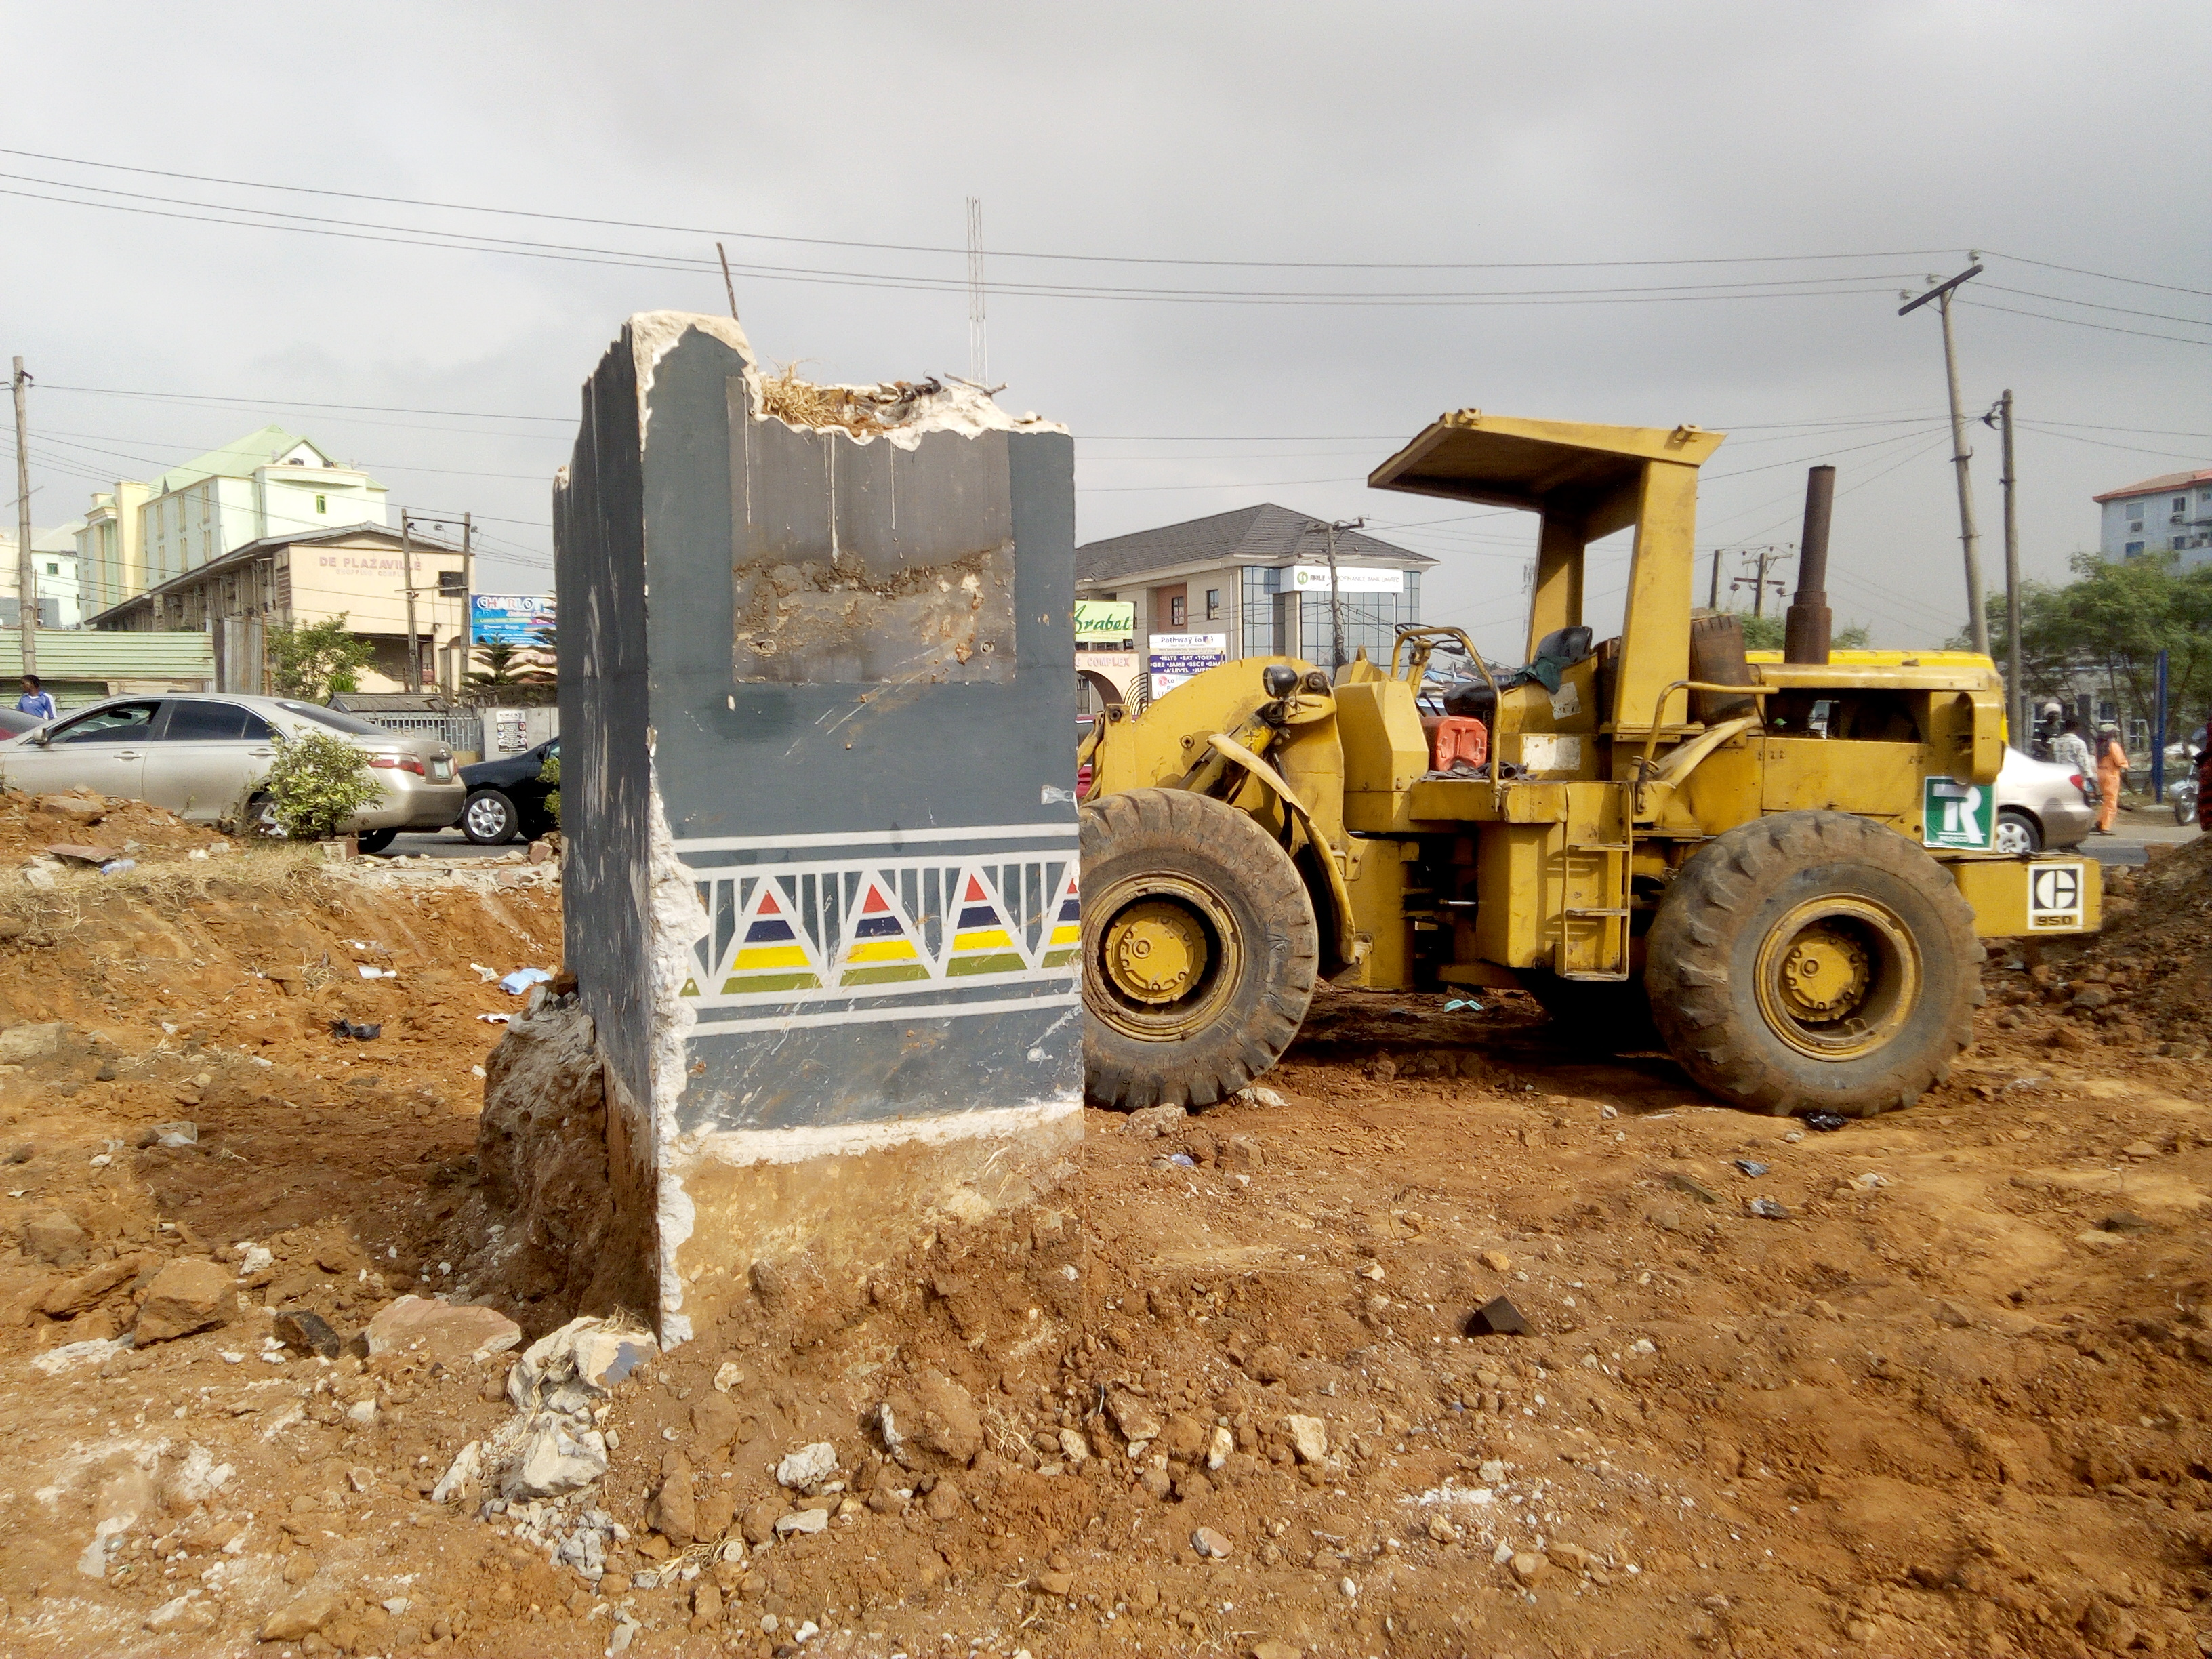 The site where Fela's statue is being pulled down